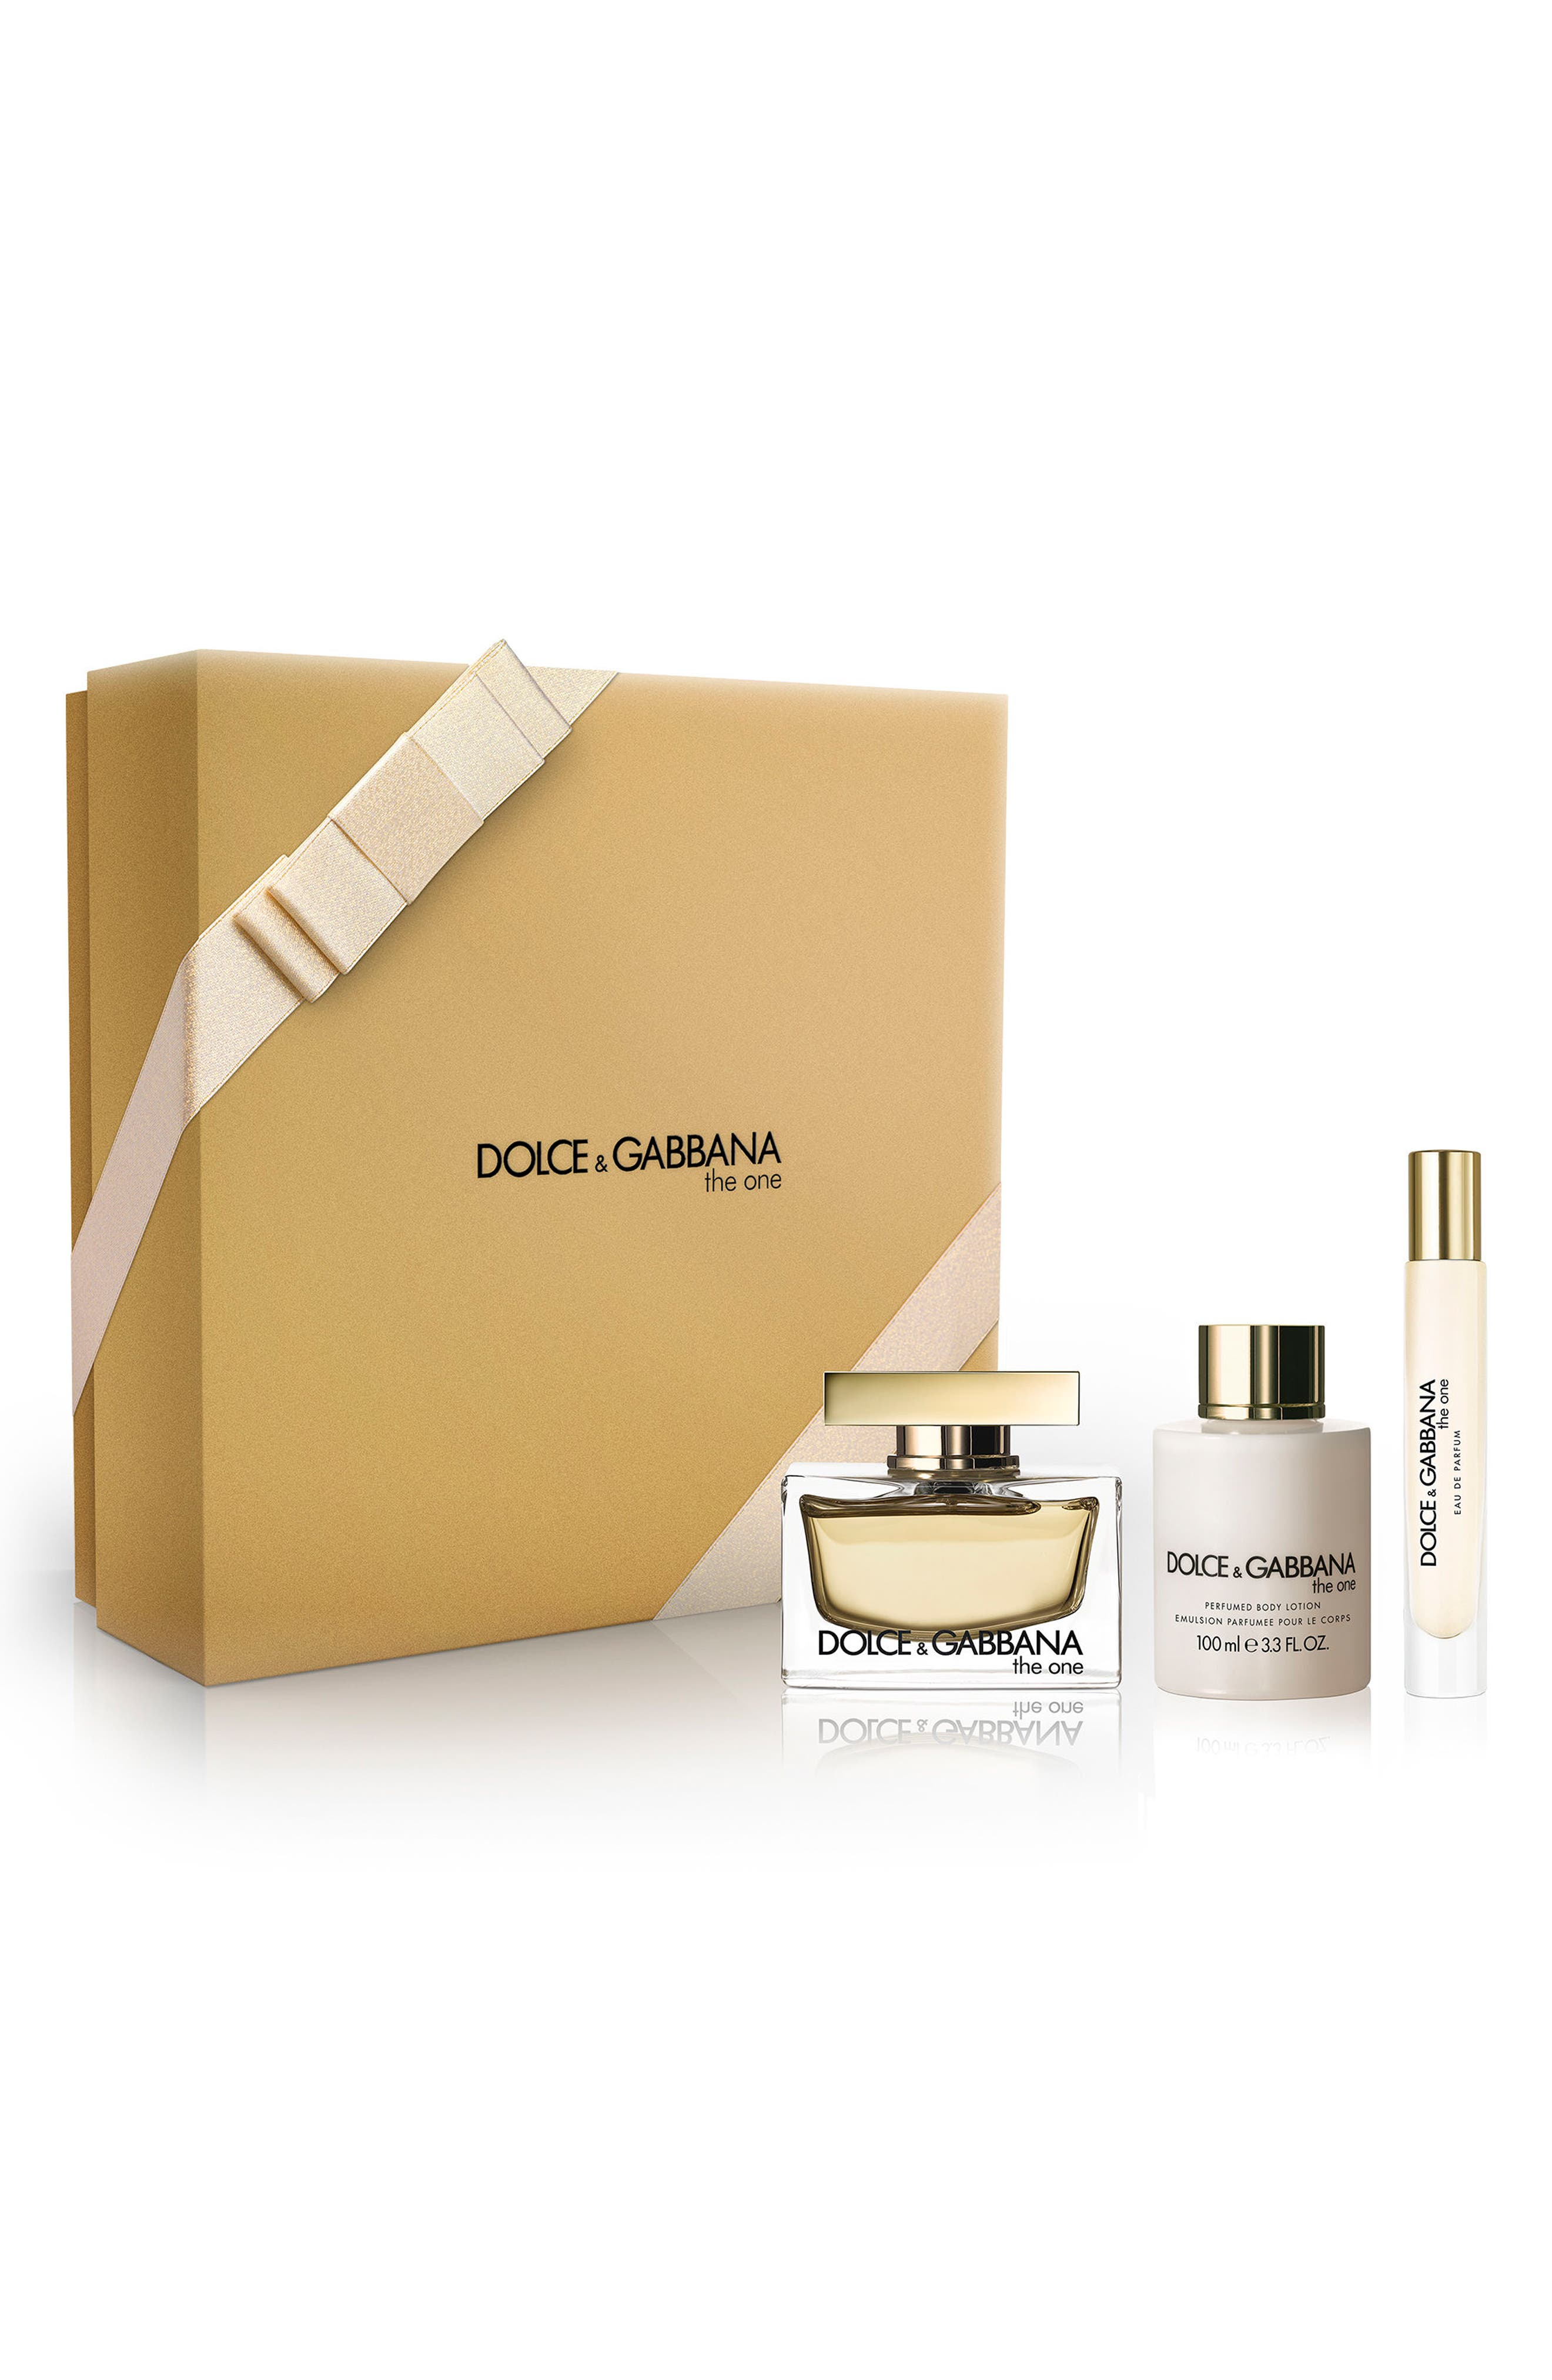 Dolce&Gabbana The One Eau de Parfum Trio ($174 Value)